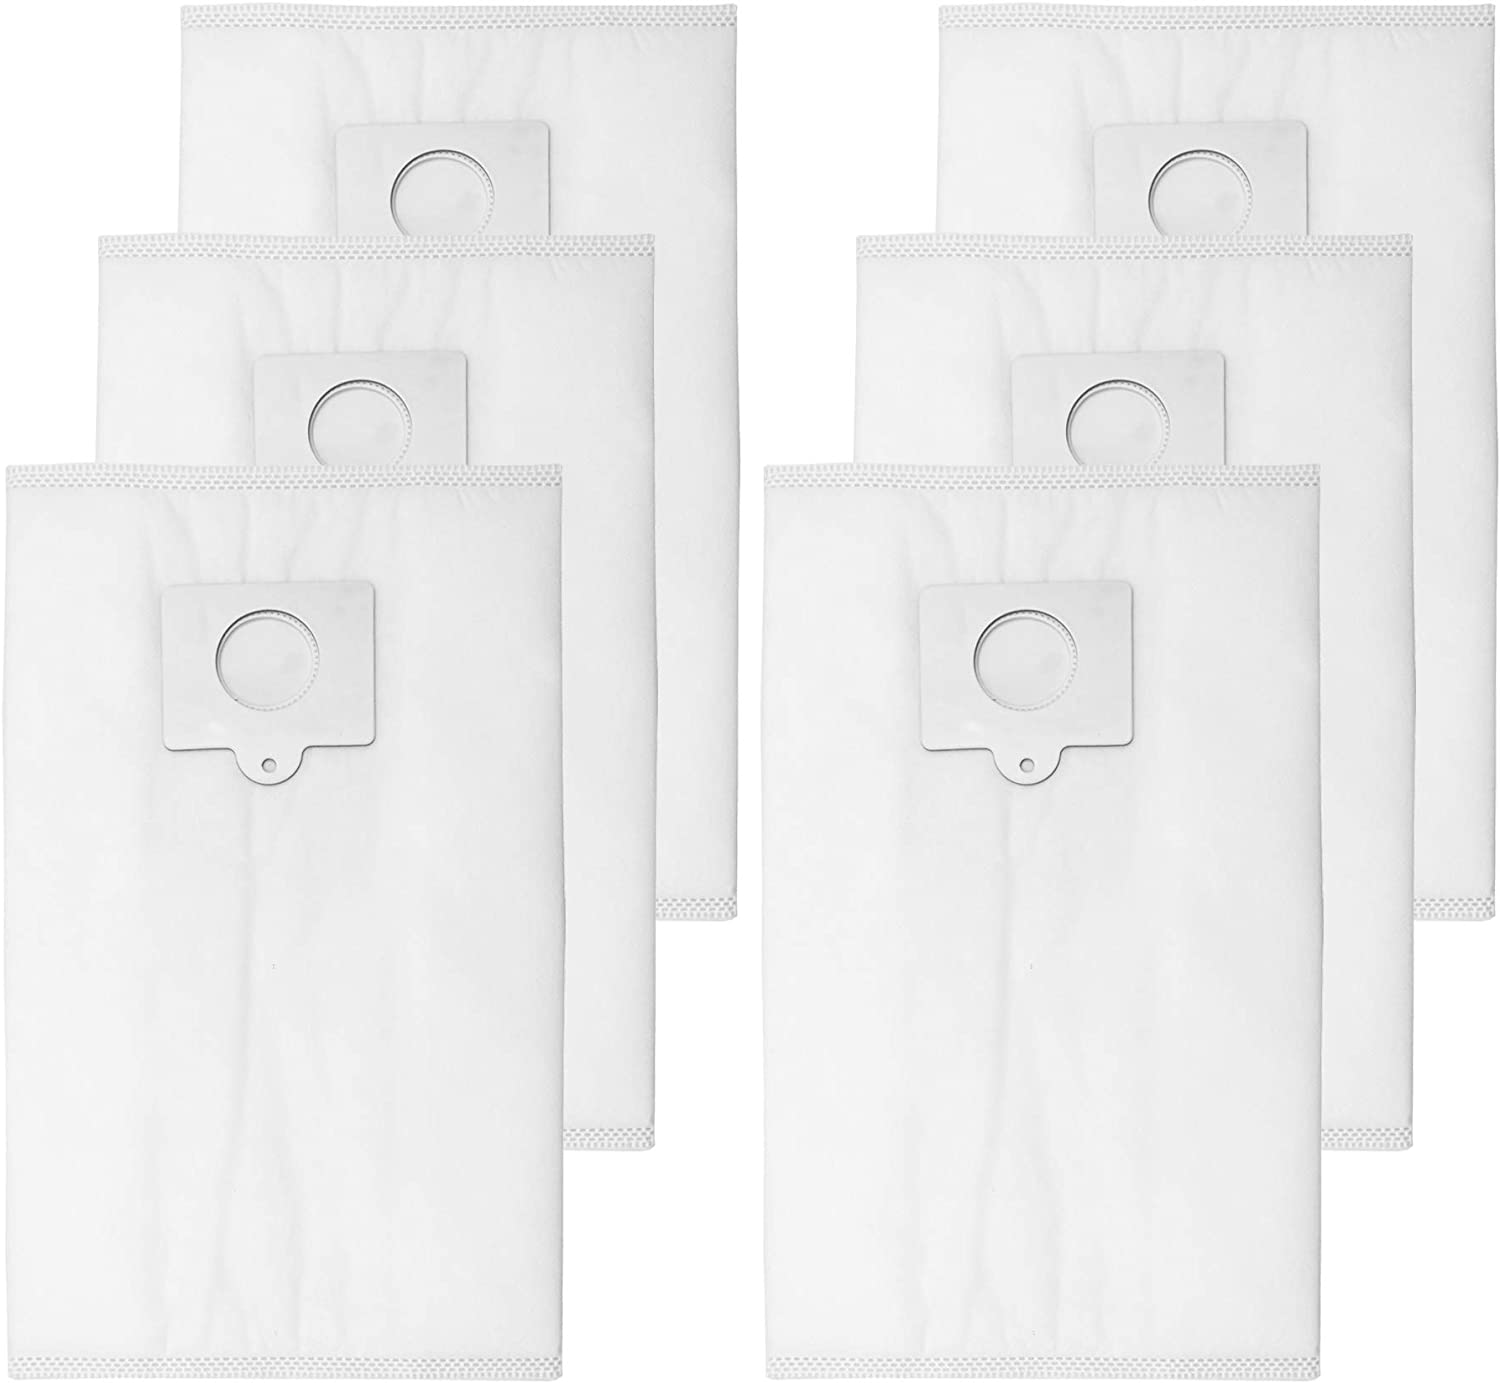 Reinlichkeit 6 Pack Canister Vacuum Bags for Kenmore and Sears Style Q/C Bags for Canister Vacuum Cleaners. Also Fits Kenmore 5055, 50557, 50558. Part Number 20-53292.